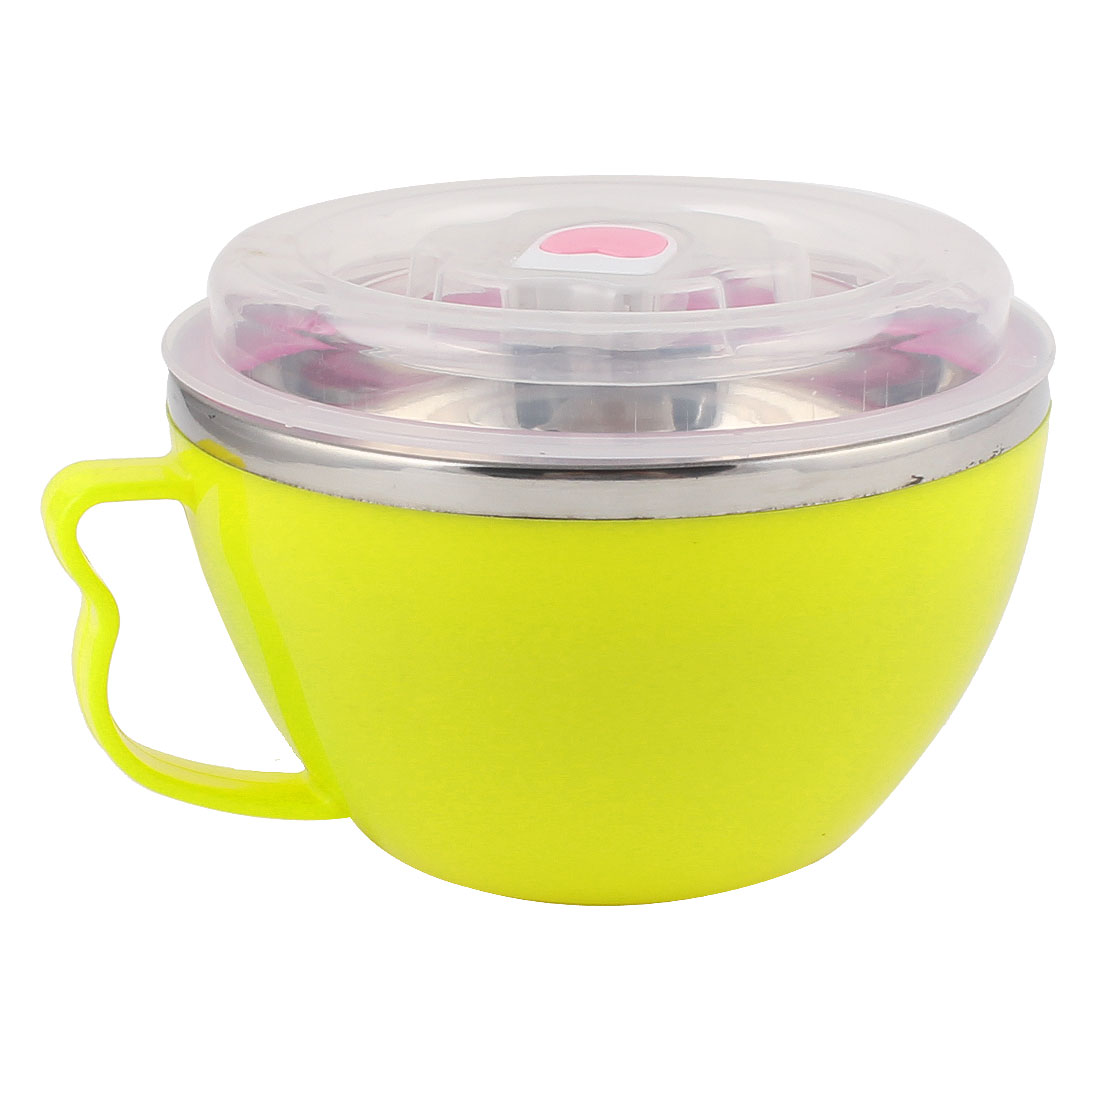 Household Plastic Handle Stainless Steel Noodle Rice Lunch Box Bowl Yellow w Cover